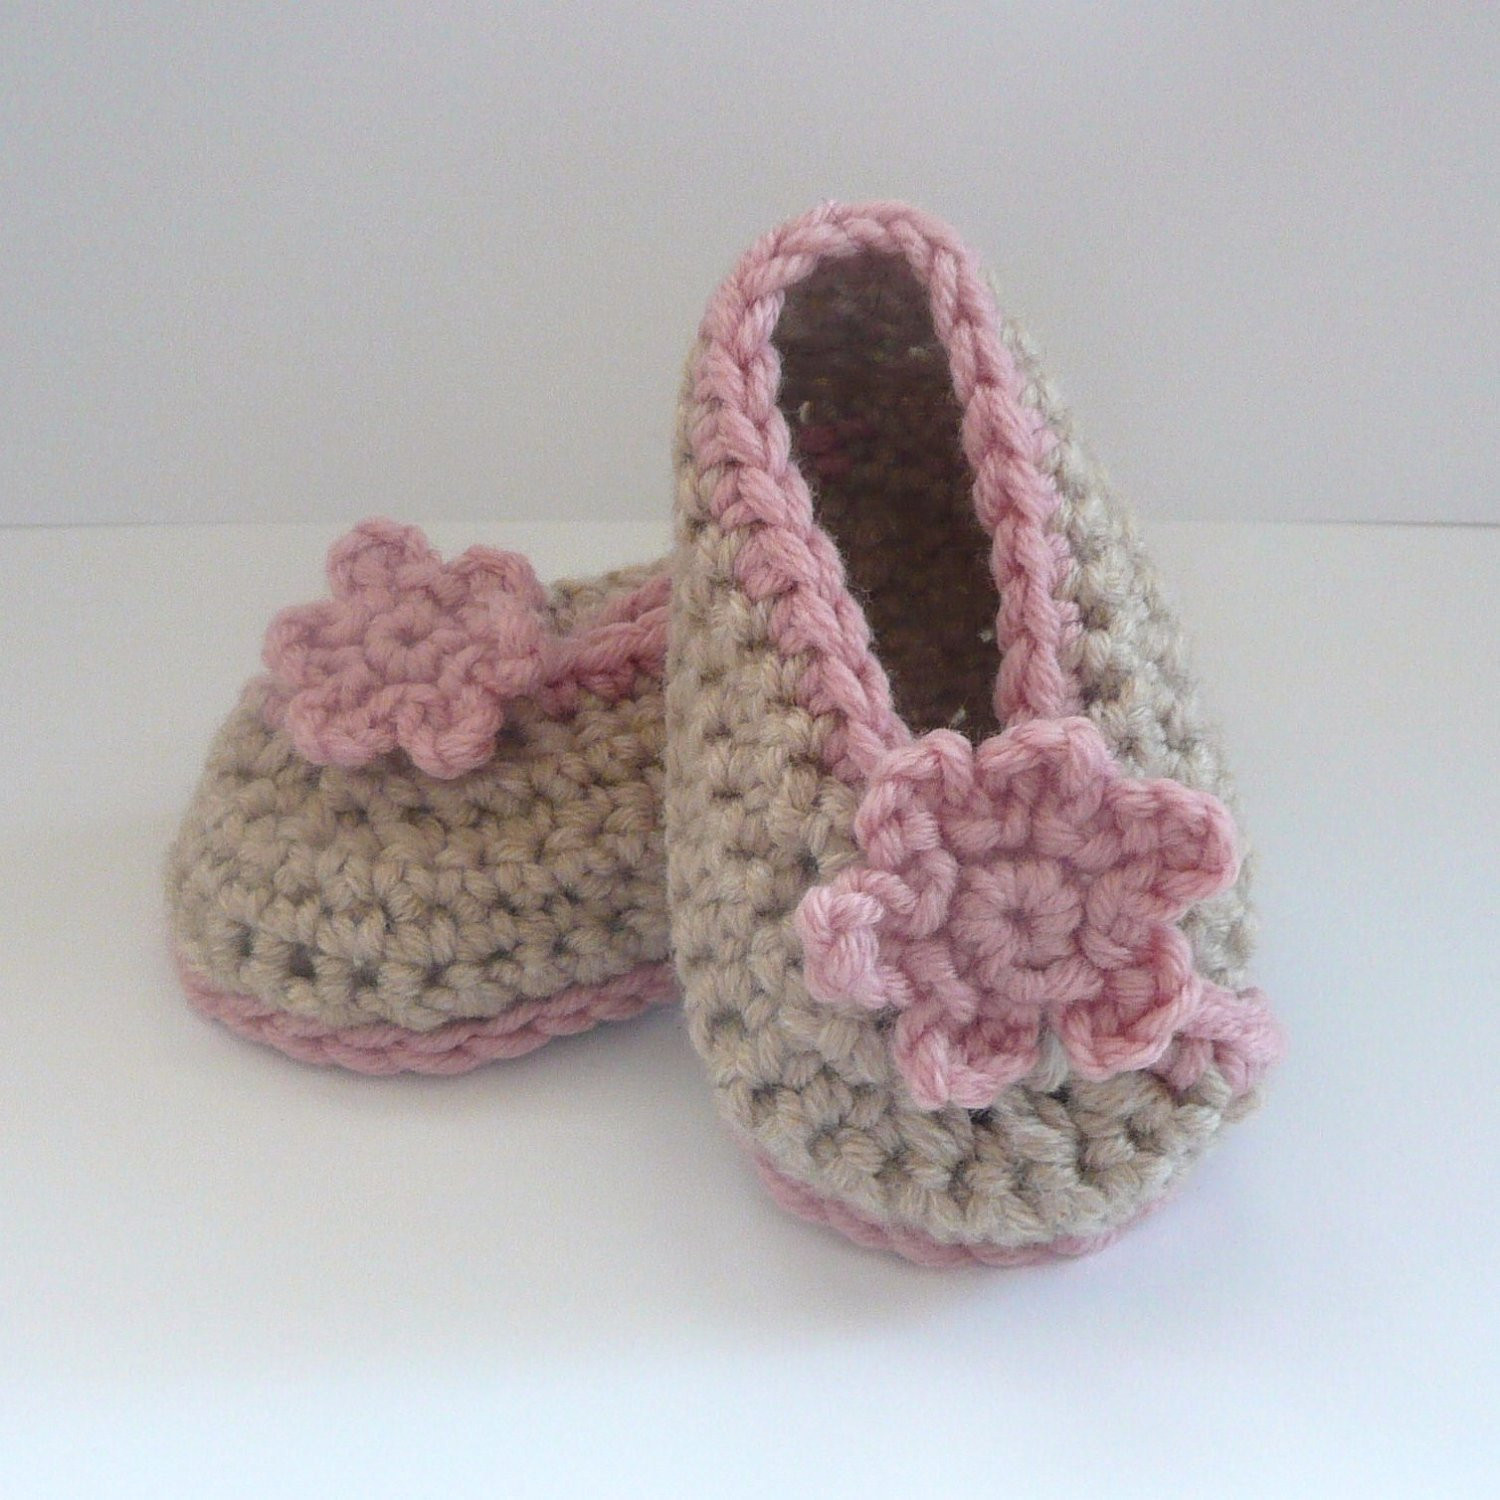 Crochet Baby Booties New Crochet Pattern Baby Booties Crossover Baby Shoes Instant Of Crochet Baby Booties Fresh Crochet Baby Mary Jane Booties Free Patterns